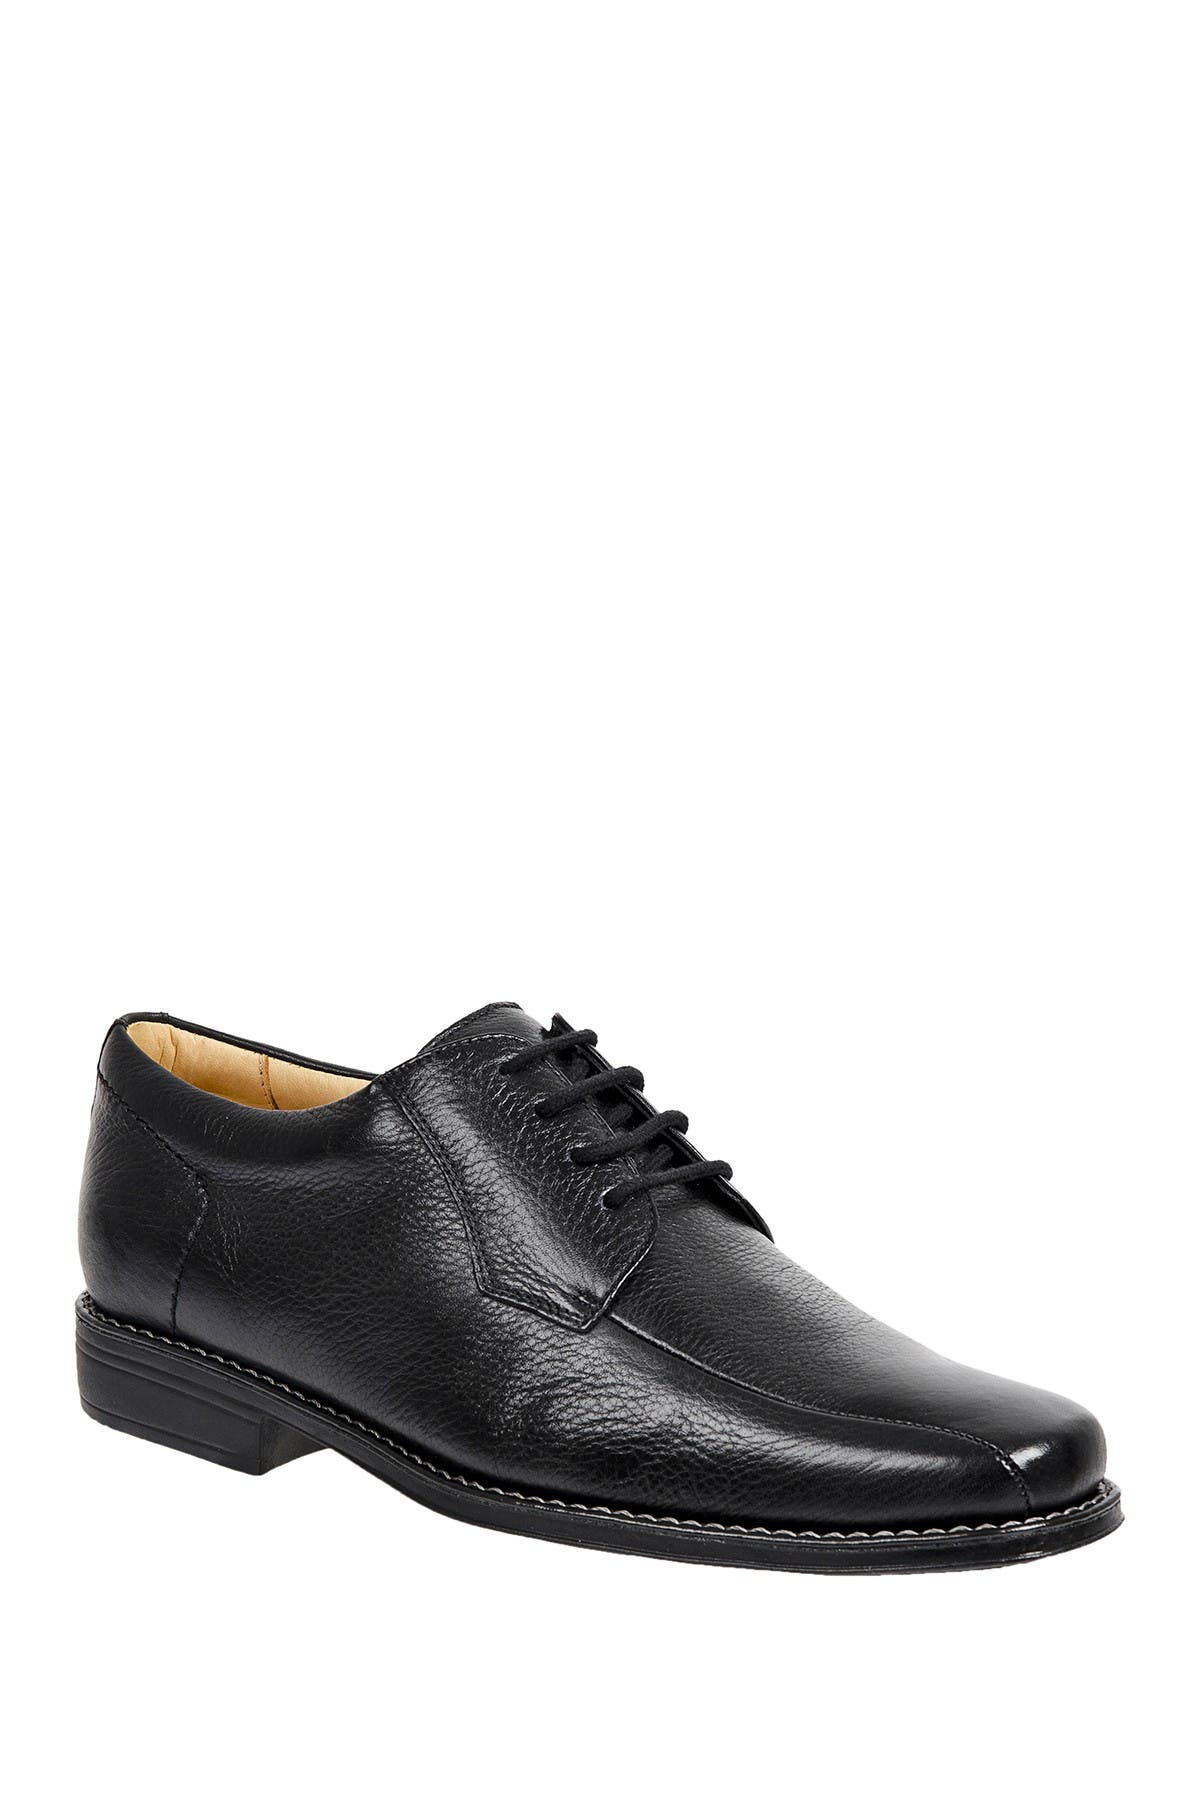 Sandro Moscoloni Bicycle Toe Derby In Blk